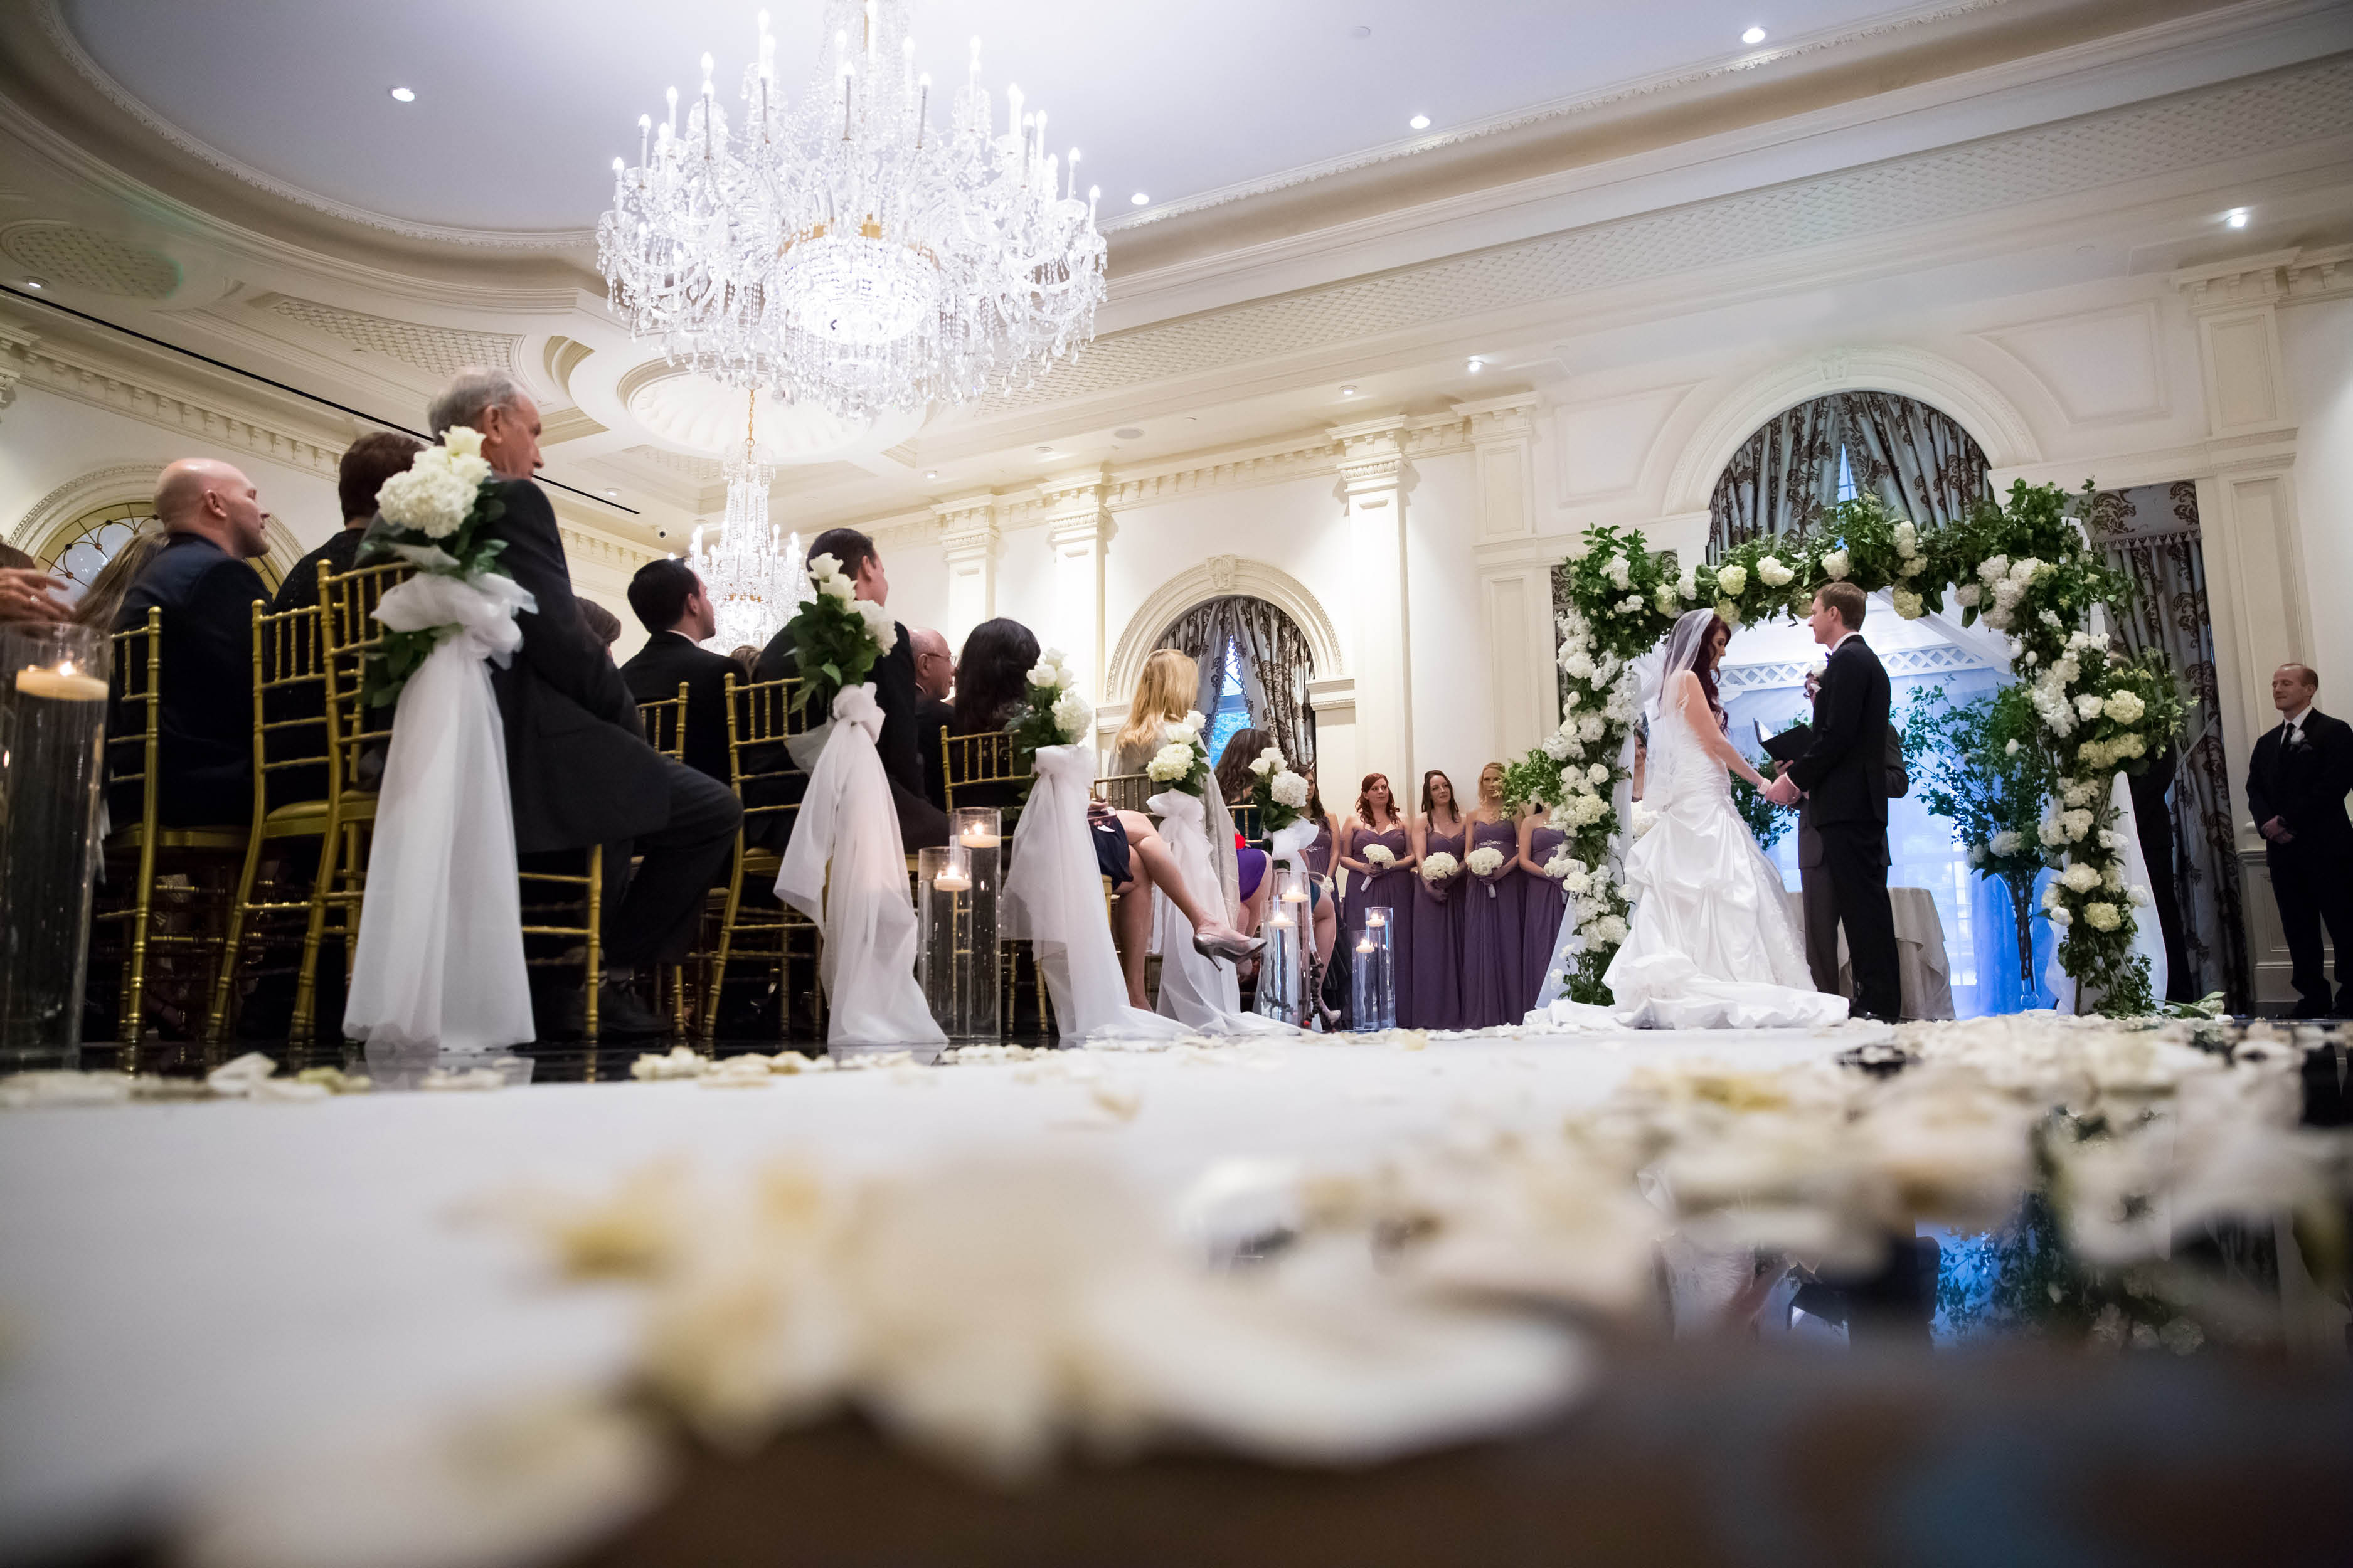 Emma_cleary_photography the Rockleigh NJ wedding14